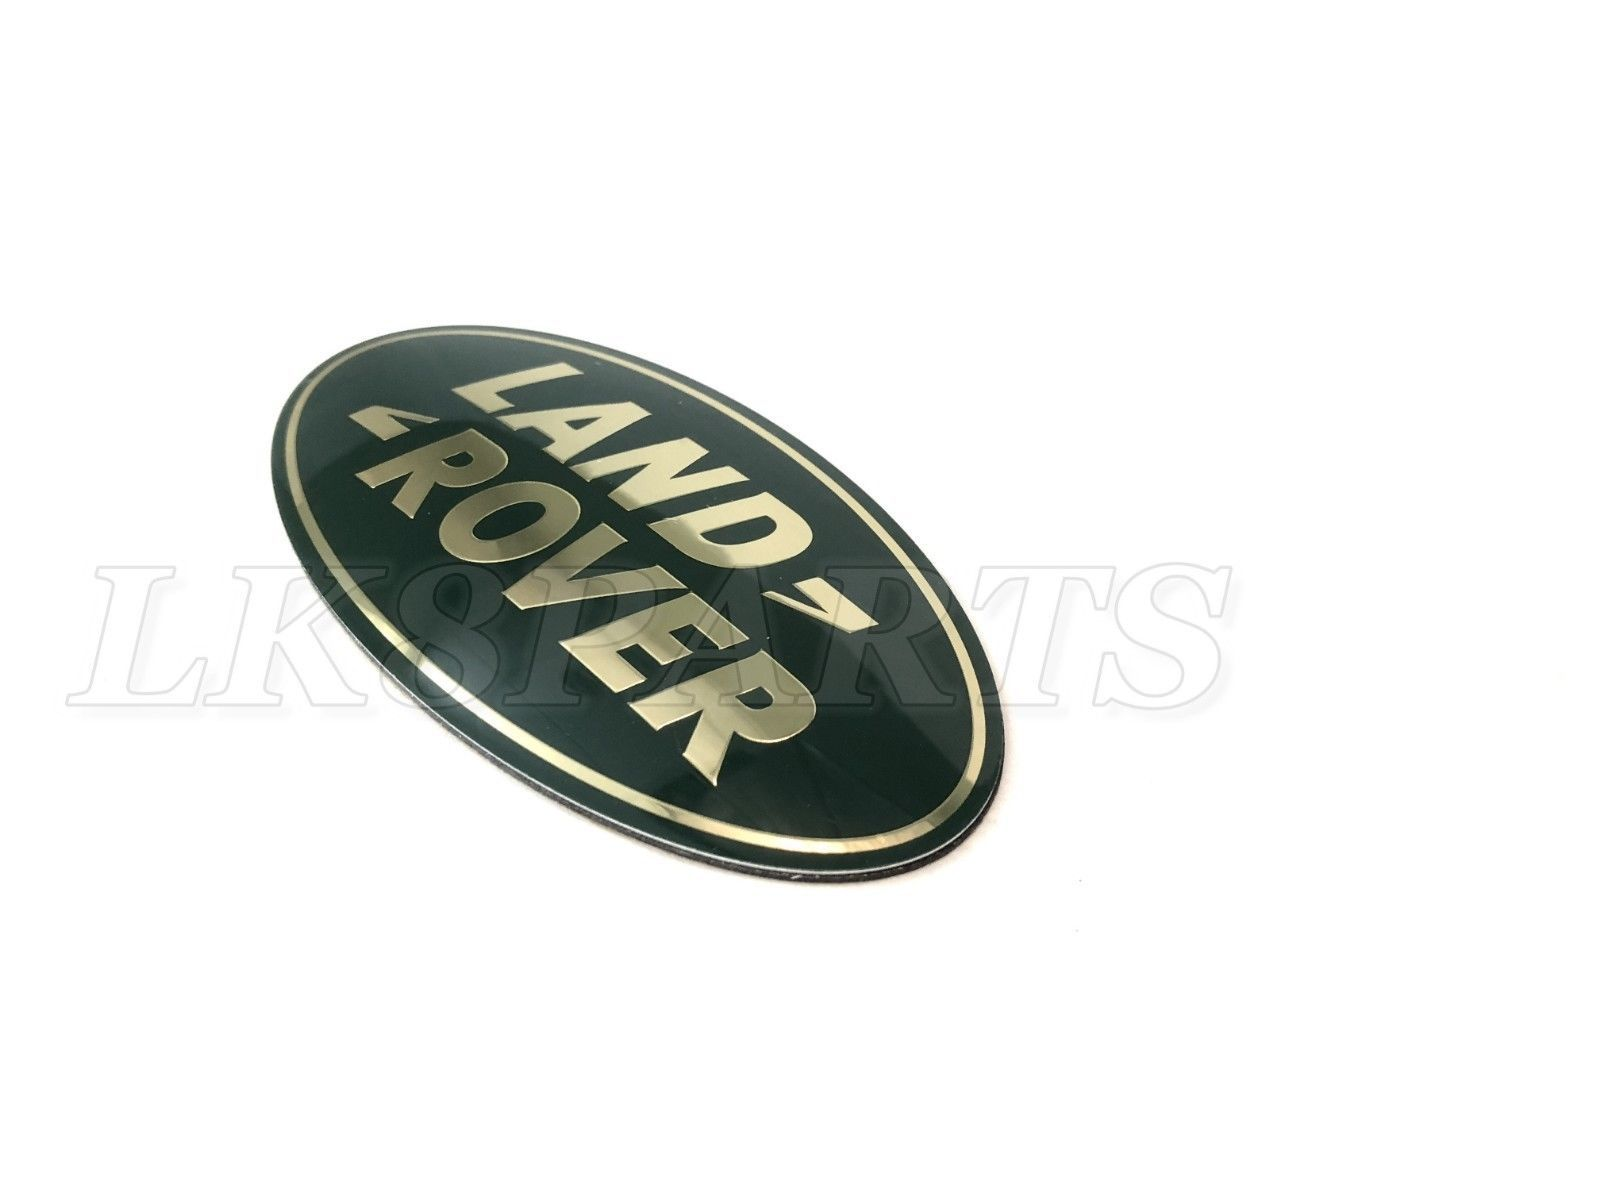 LAND ROVER DEFENDER 90 110 GREEN LAND ROVER FRONT GRILLE OVAL BADGE MXC6402